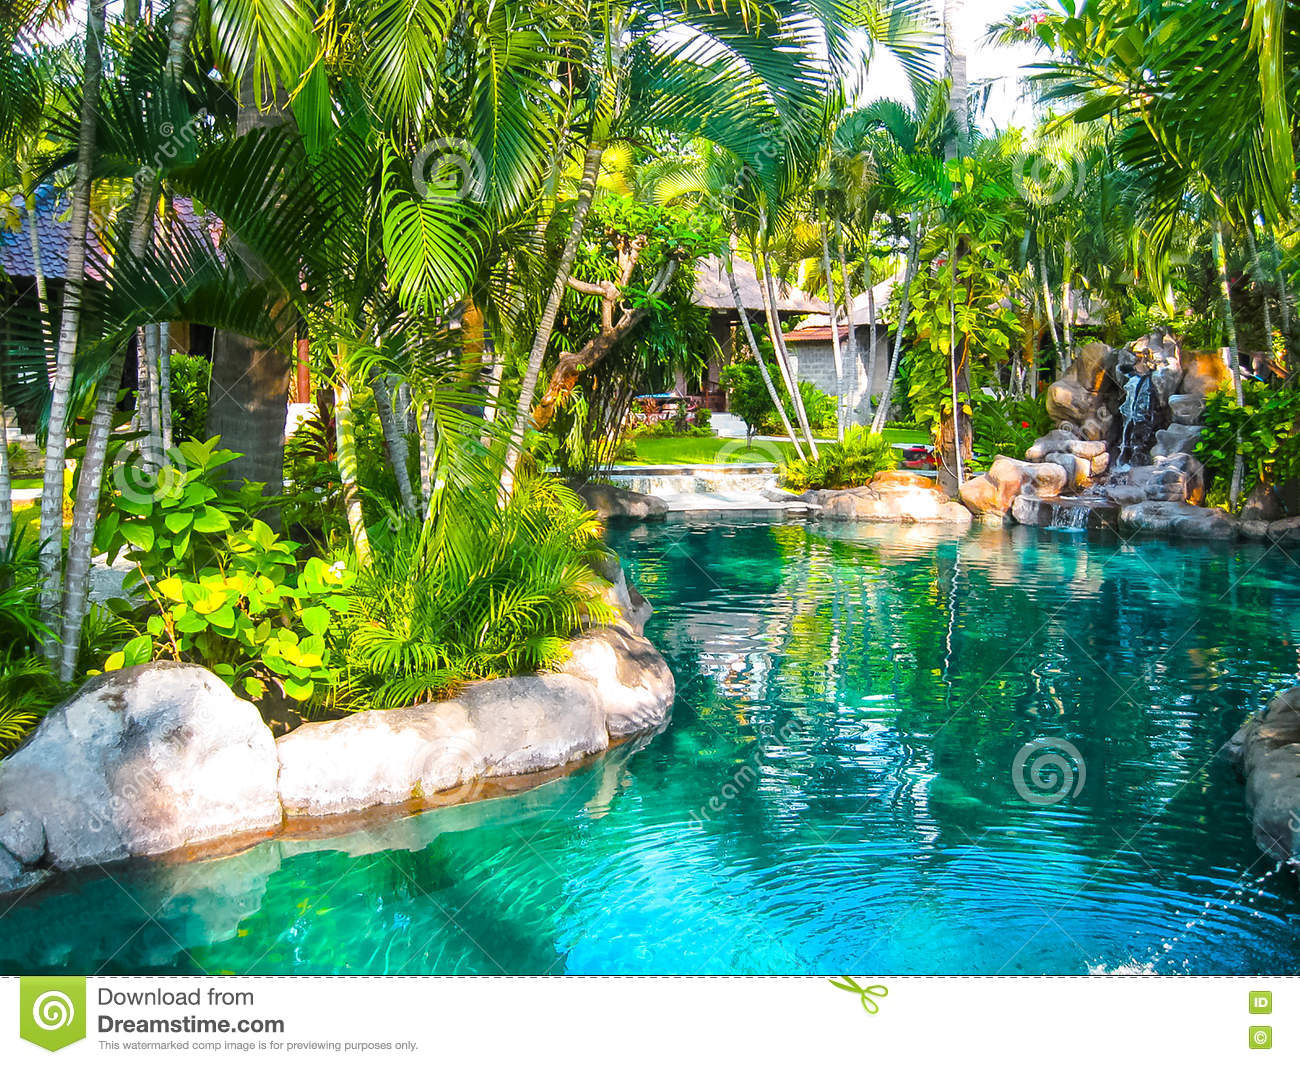 Bali Indonesia April 13 2014 View Of Swimming Pool At Coral View Villas Editorial Photo Image Of Attraction Climate 78855811